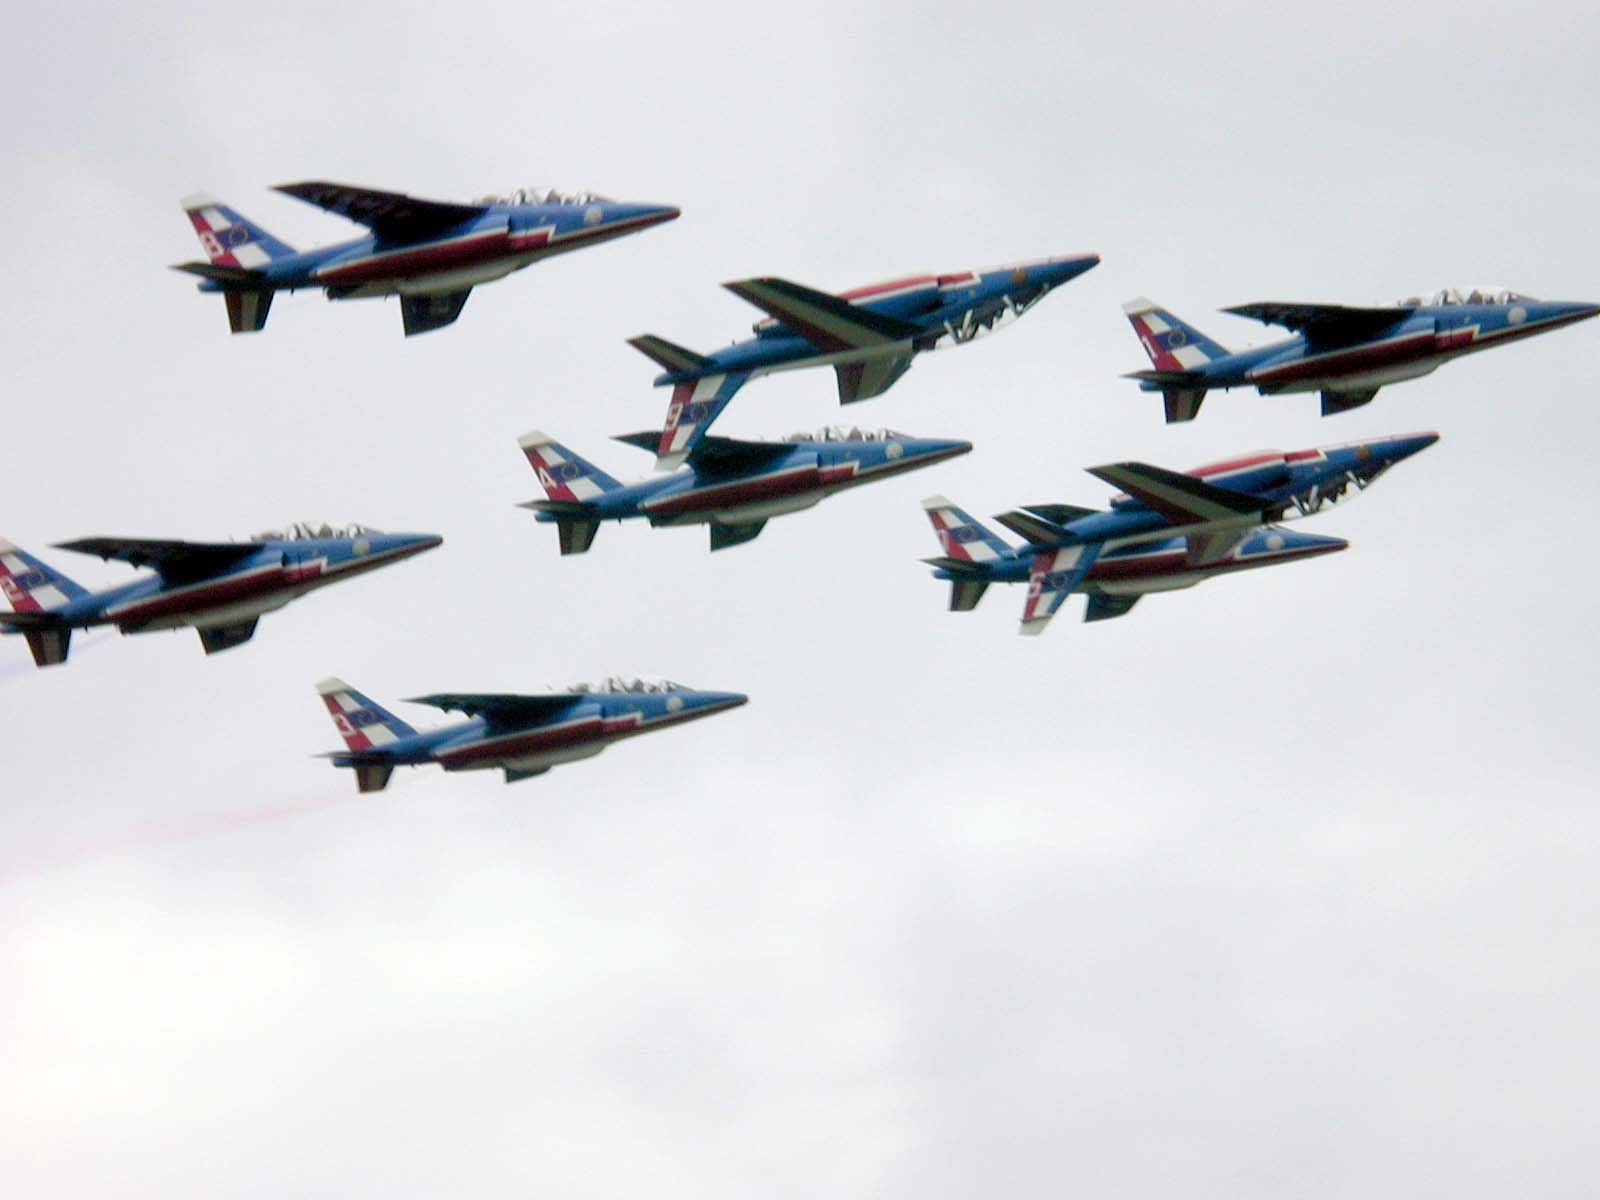 vehicles air squadron fighterplanes redarrows arrows airshow squad formation